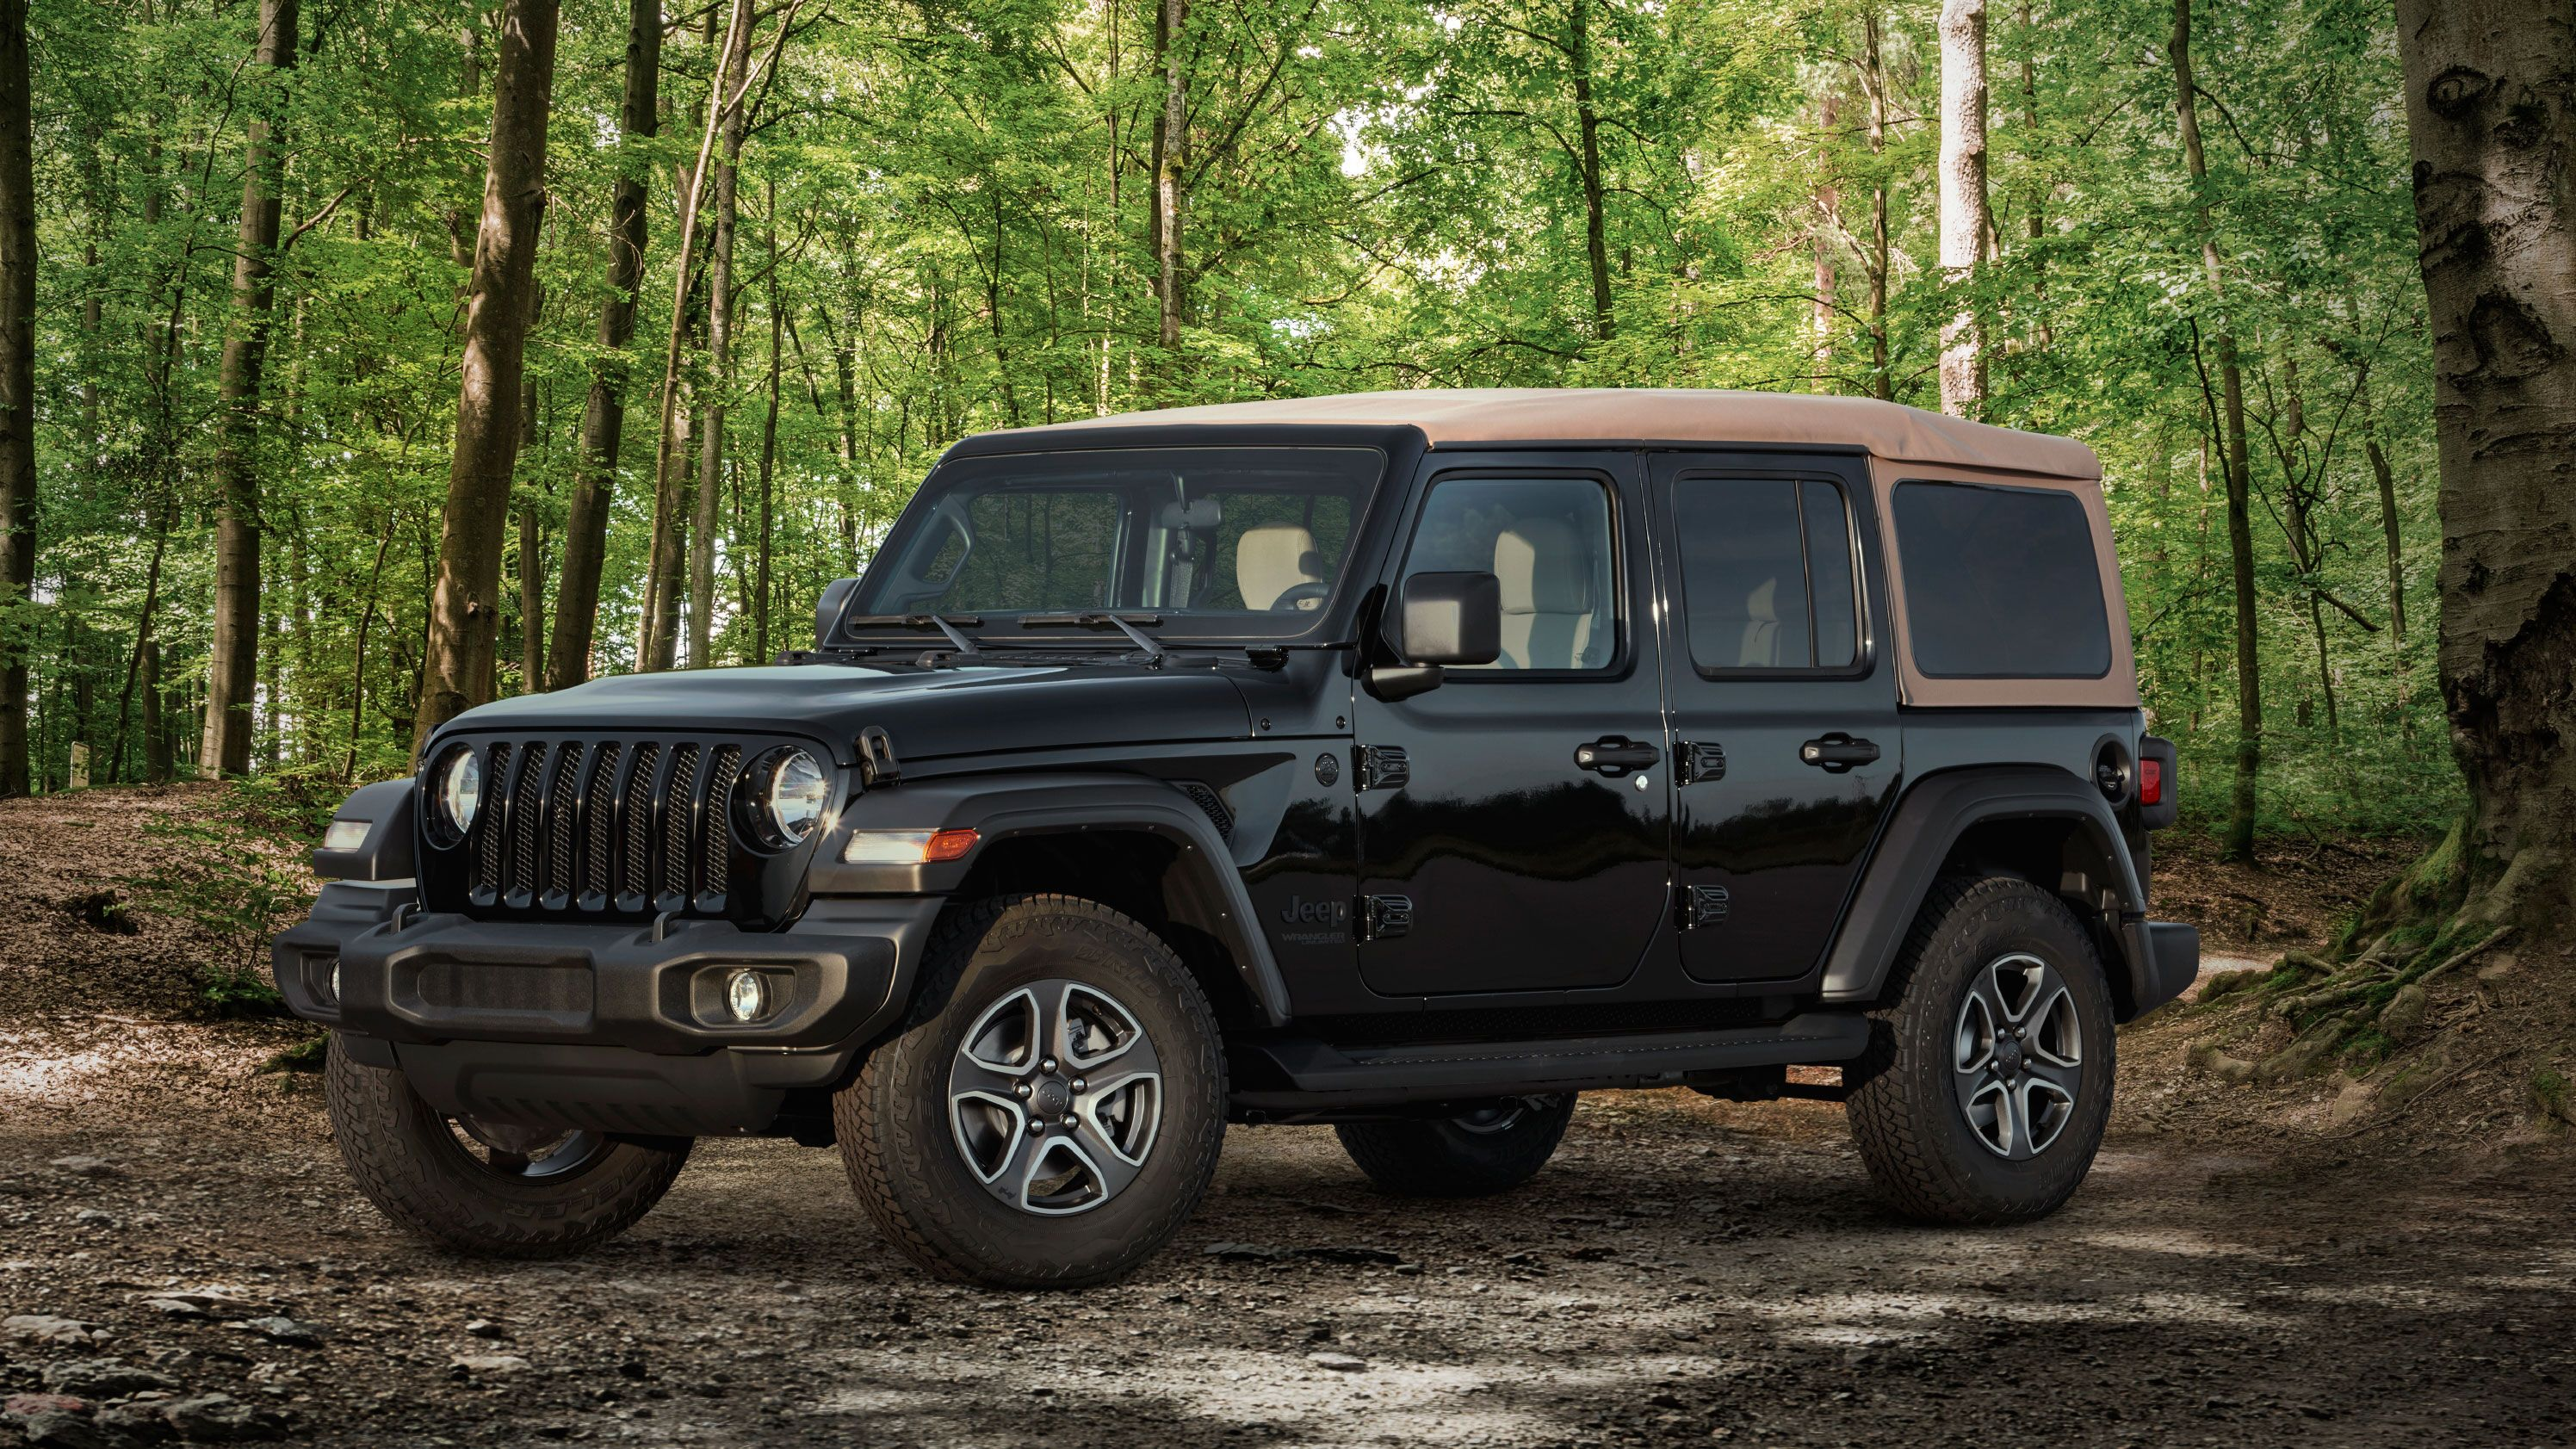 2020 Jeep Wrangler Jl Particular Editions Willys Black Tan